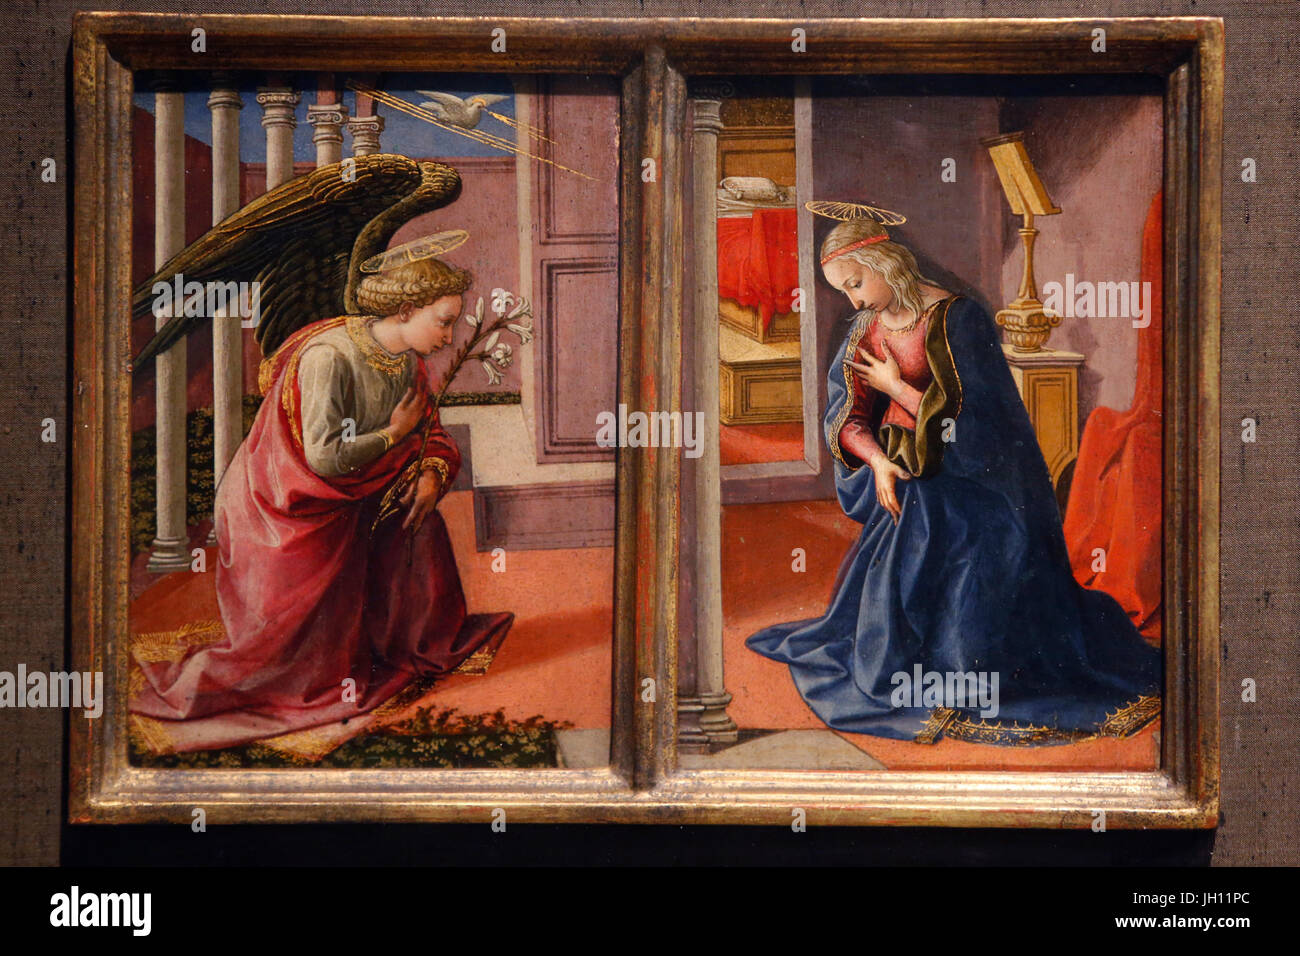 The Courtauld Gallery. Francesco Pesellino. The Annunciation. Around 1450-55. Tempera on panel. United kingdom. - Stock Image